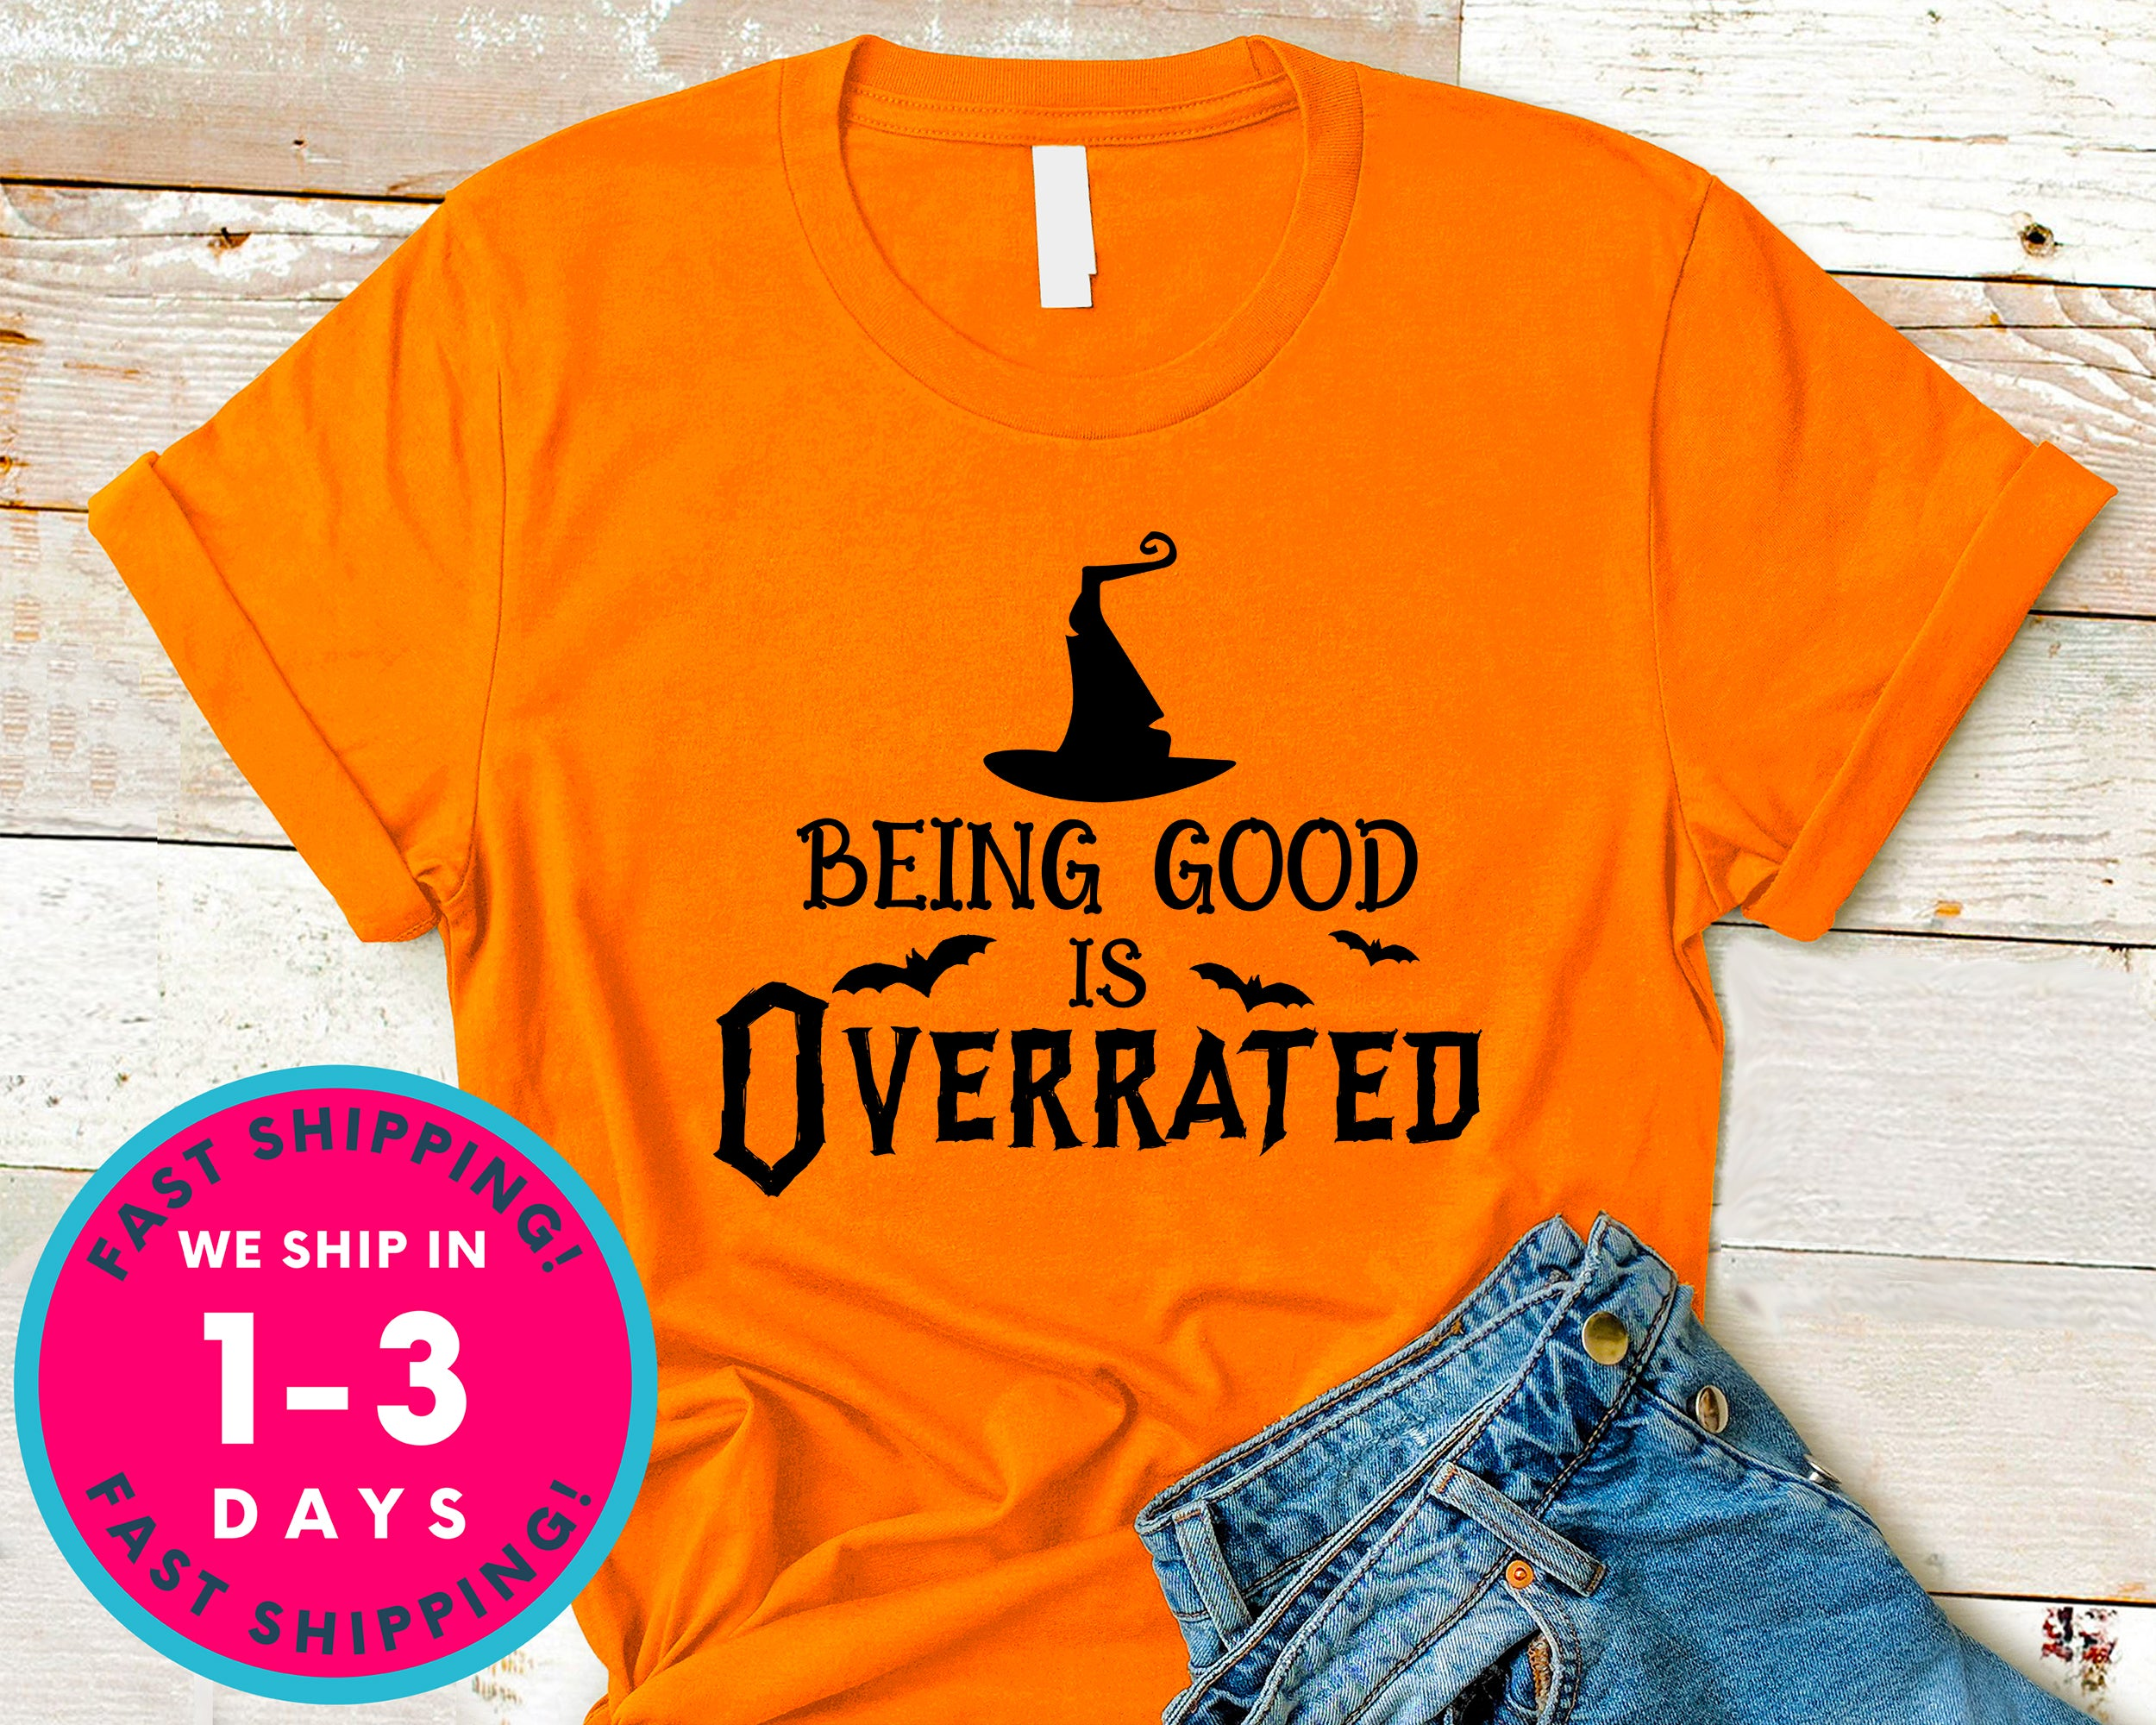 Being Good Is Overrated T-Shirt - Halloween Horror Scary Shirt